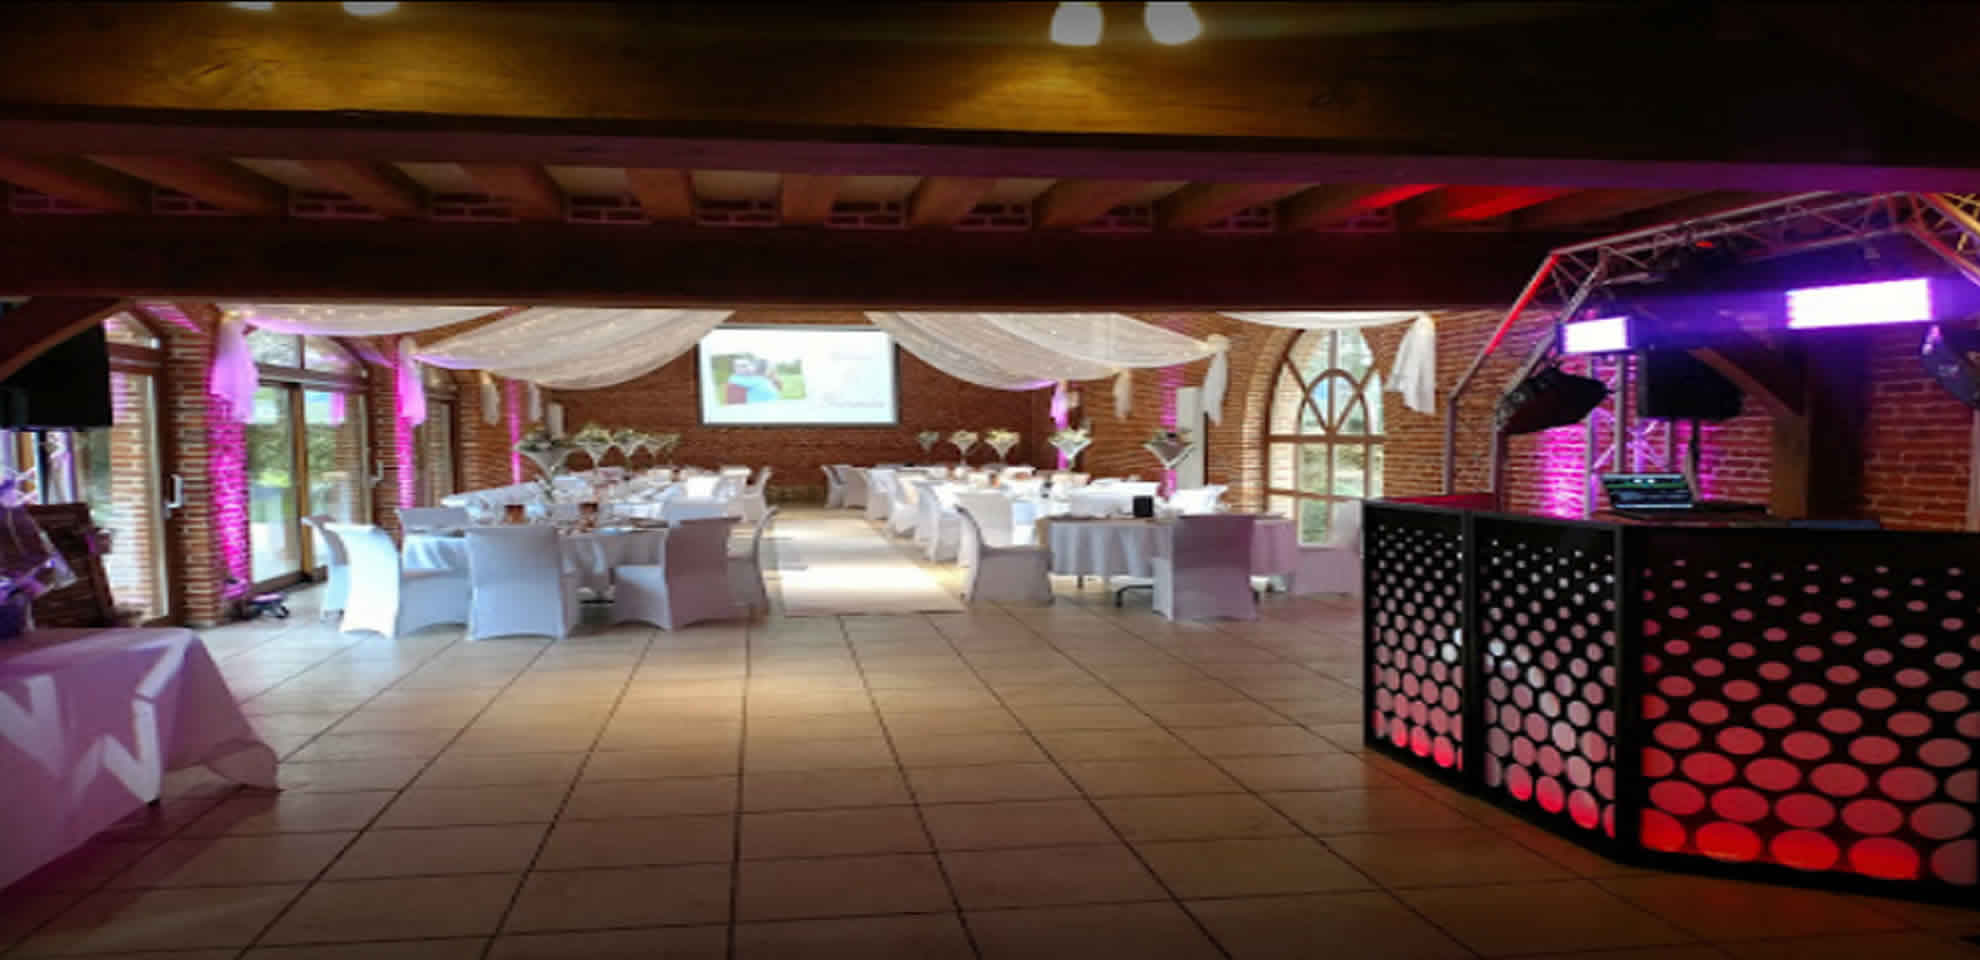 LG PRODUCTION : DJ discomobile mariage